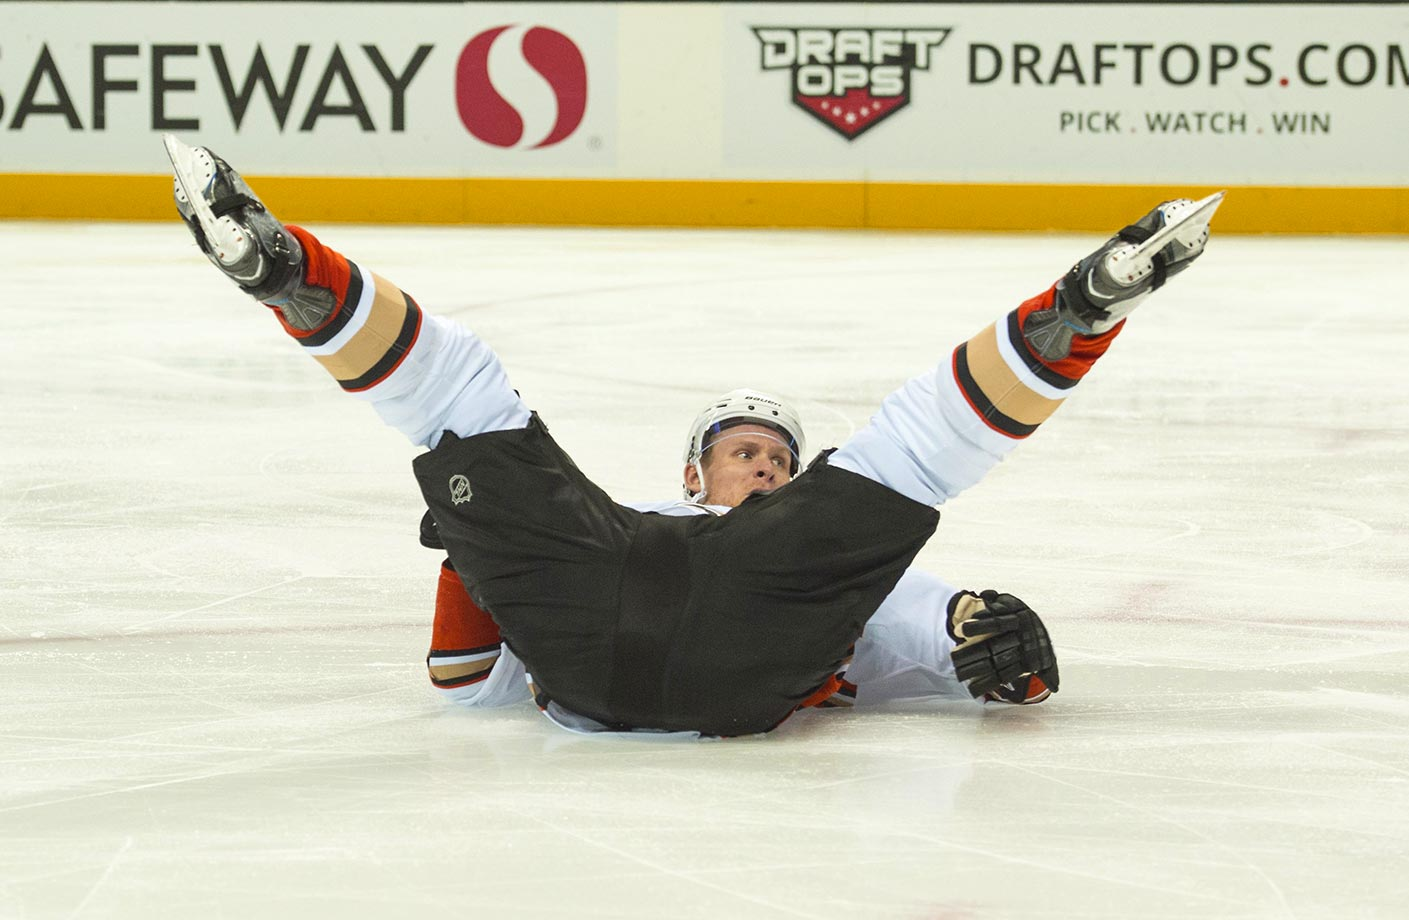 Corey Perry of the Anaheim Ducks gets tripped up in a game against the San Jose Sharks.